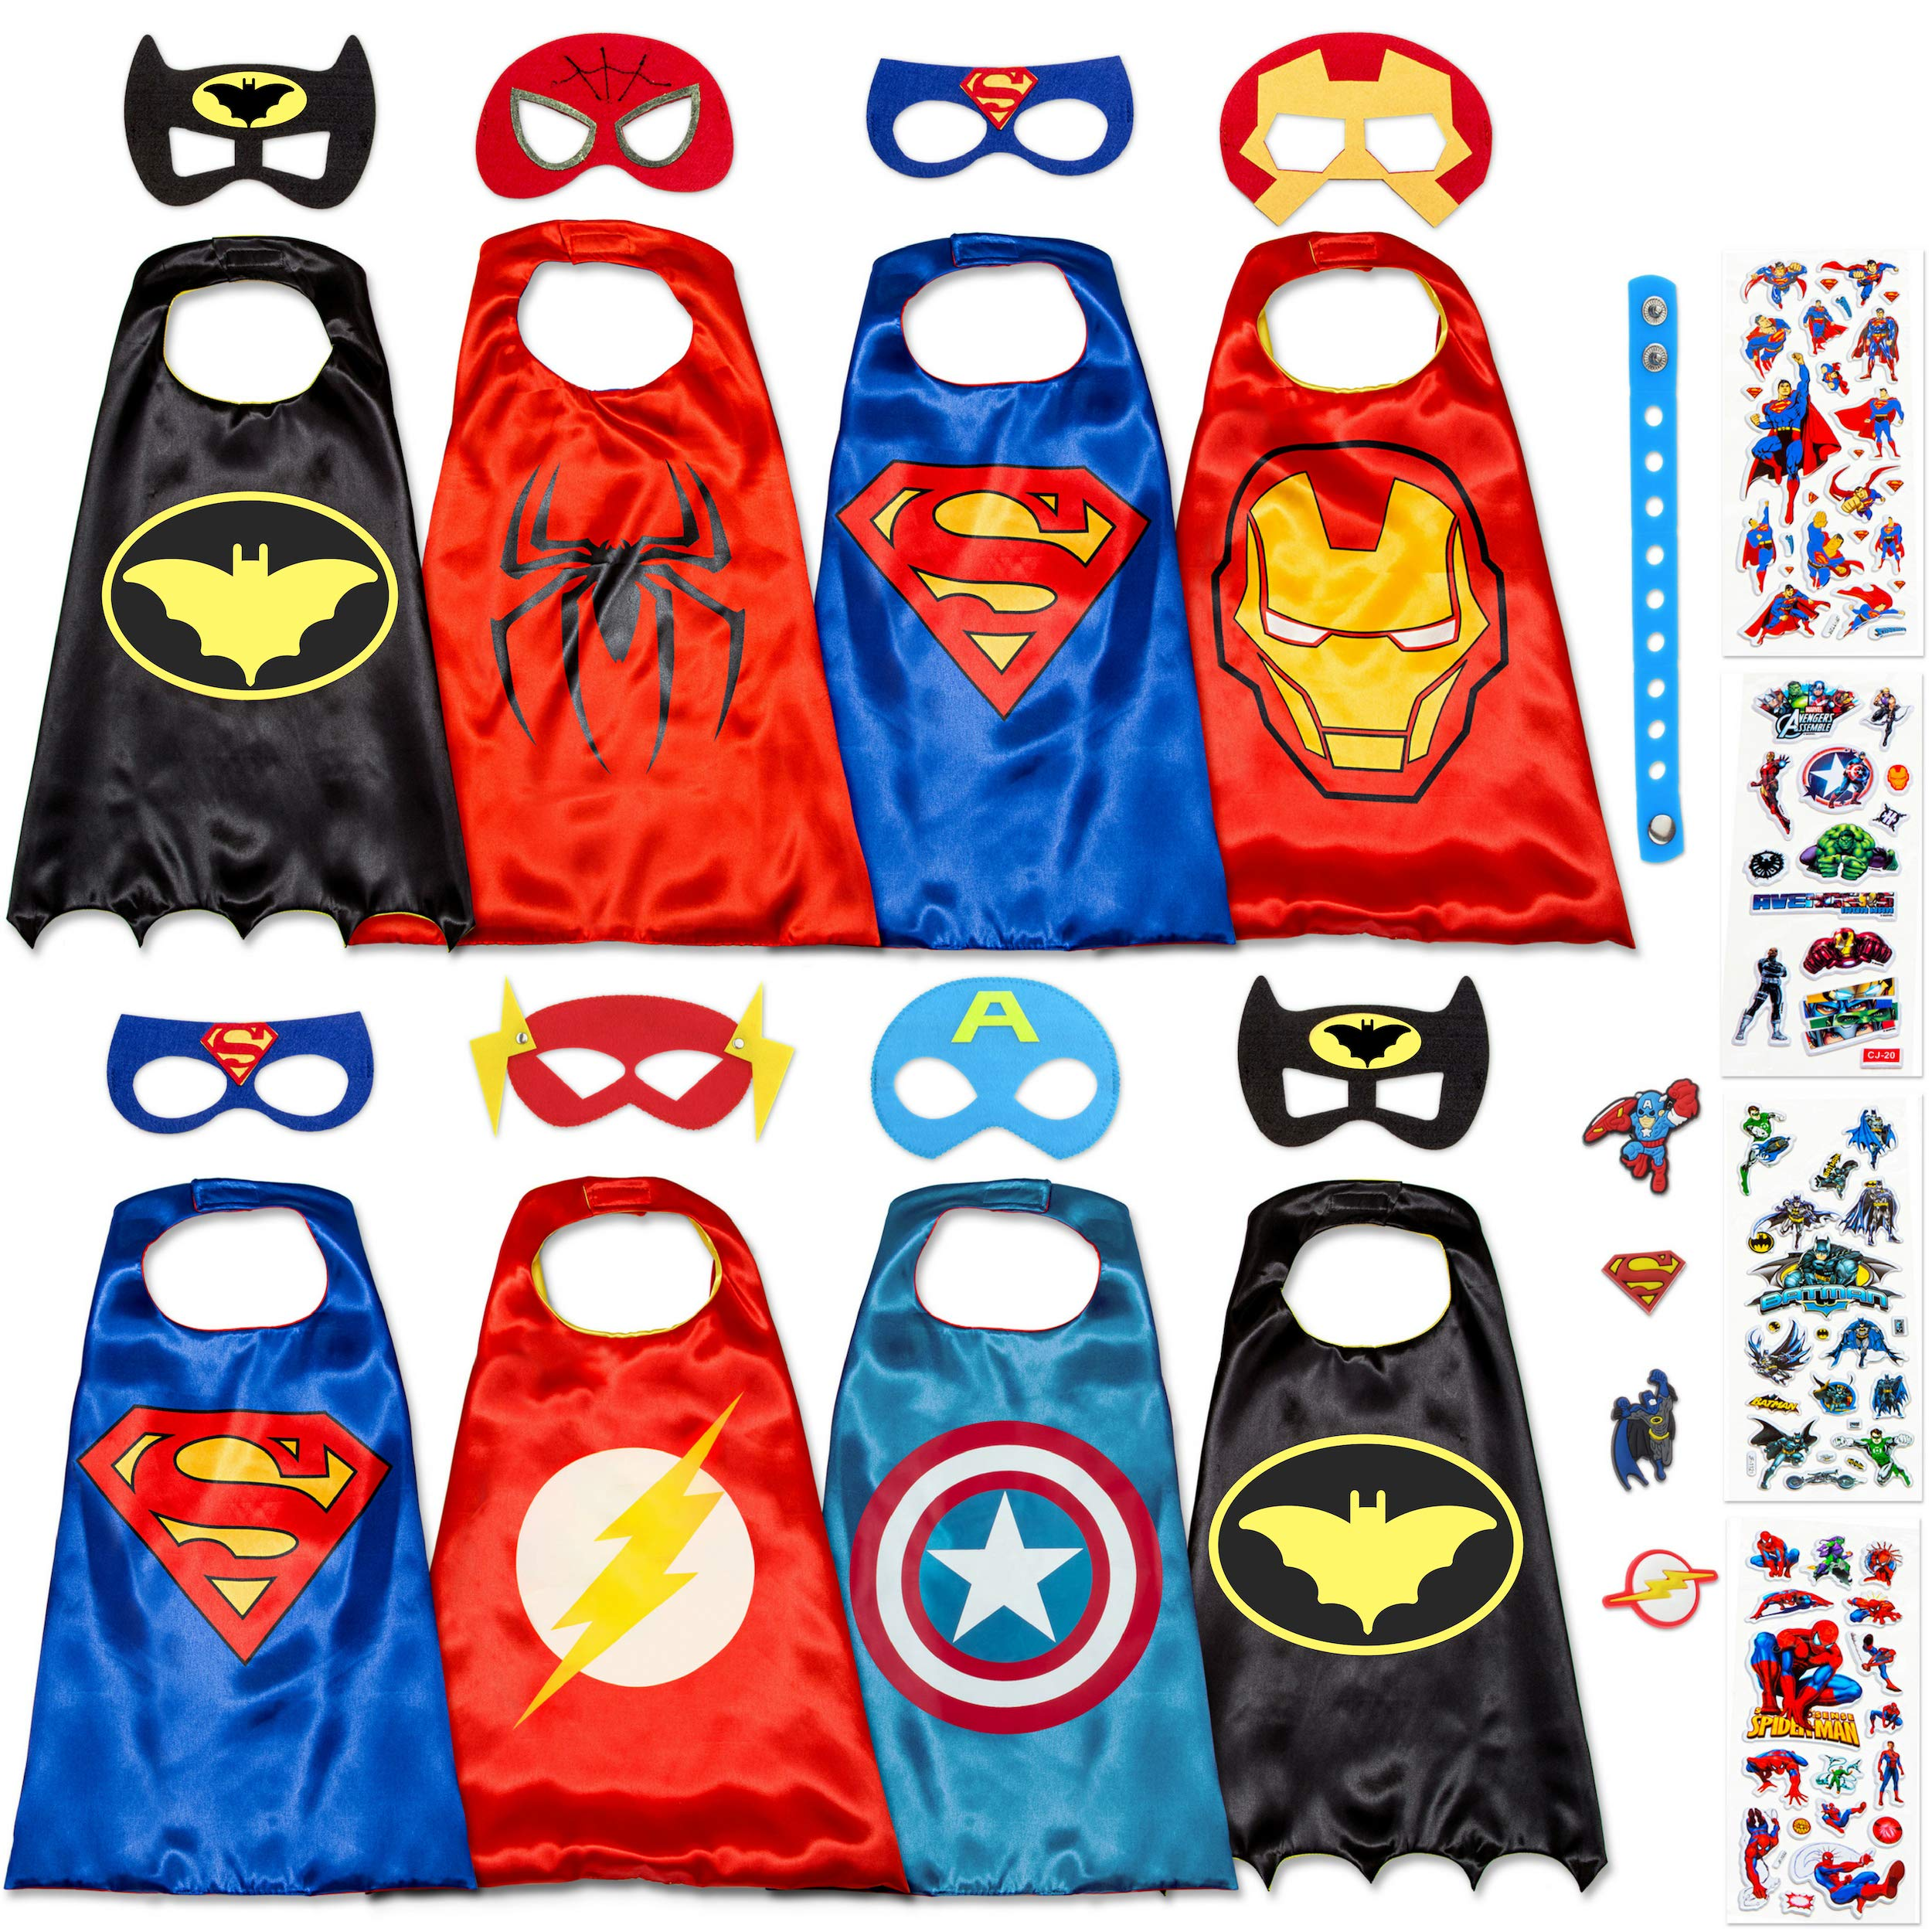 978be2e29349 Superhero Capes for Kids Set - Super Hero Toys & Costumes Birthday Party  Supplies (8 Pack Boys)